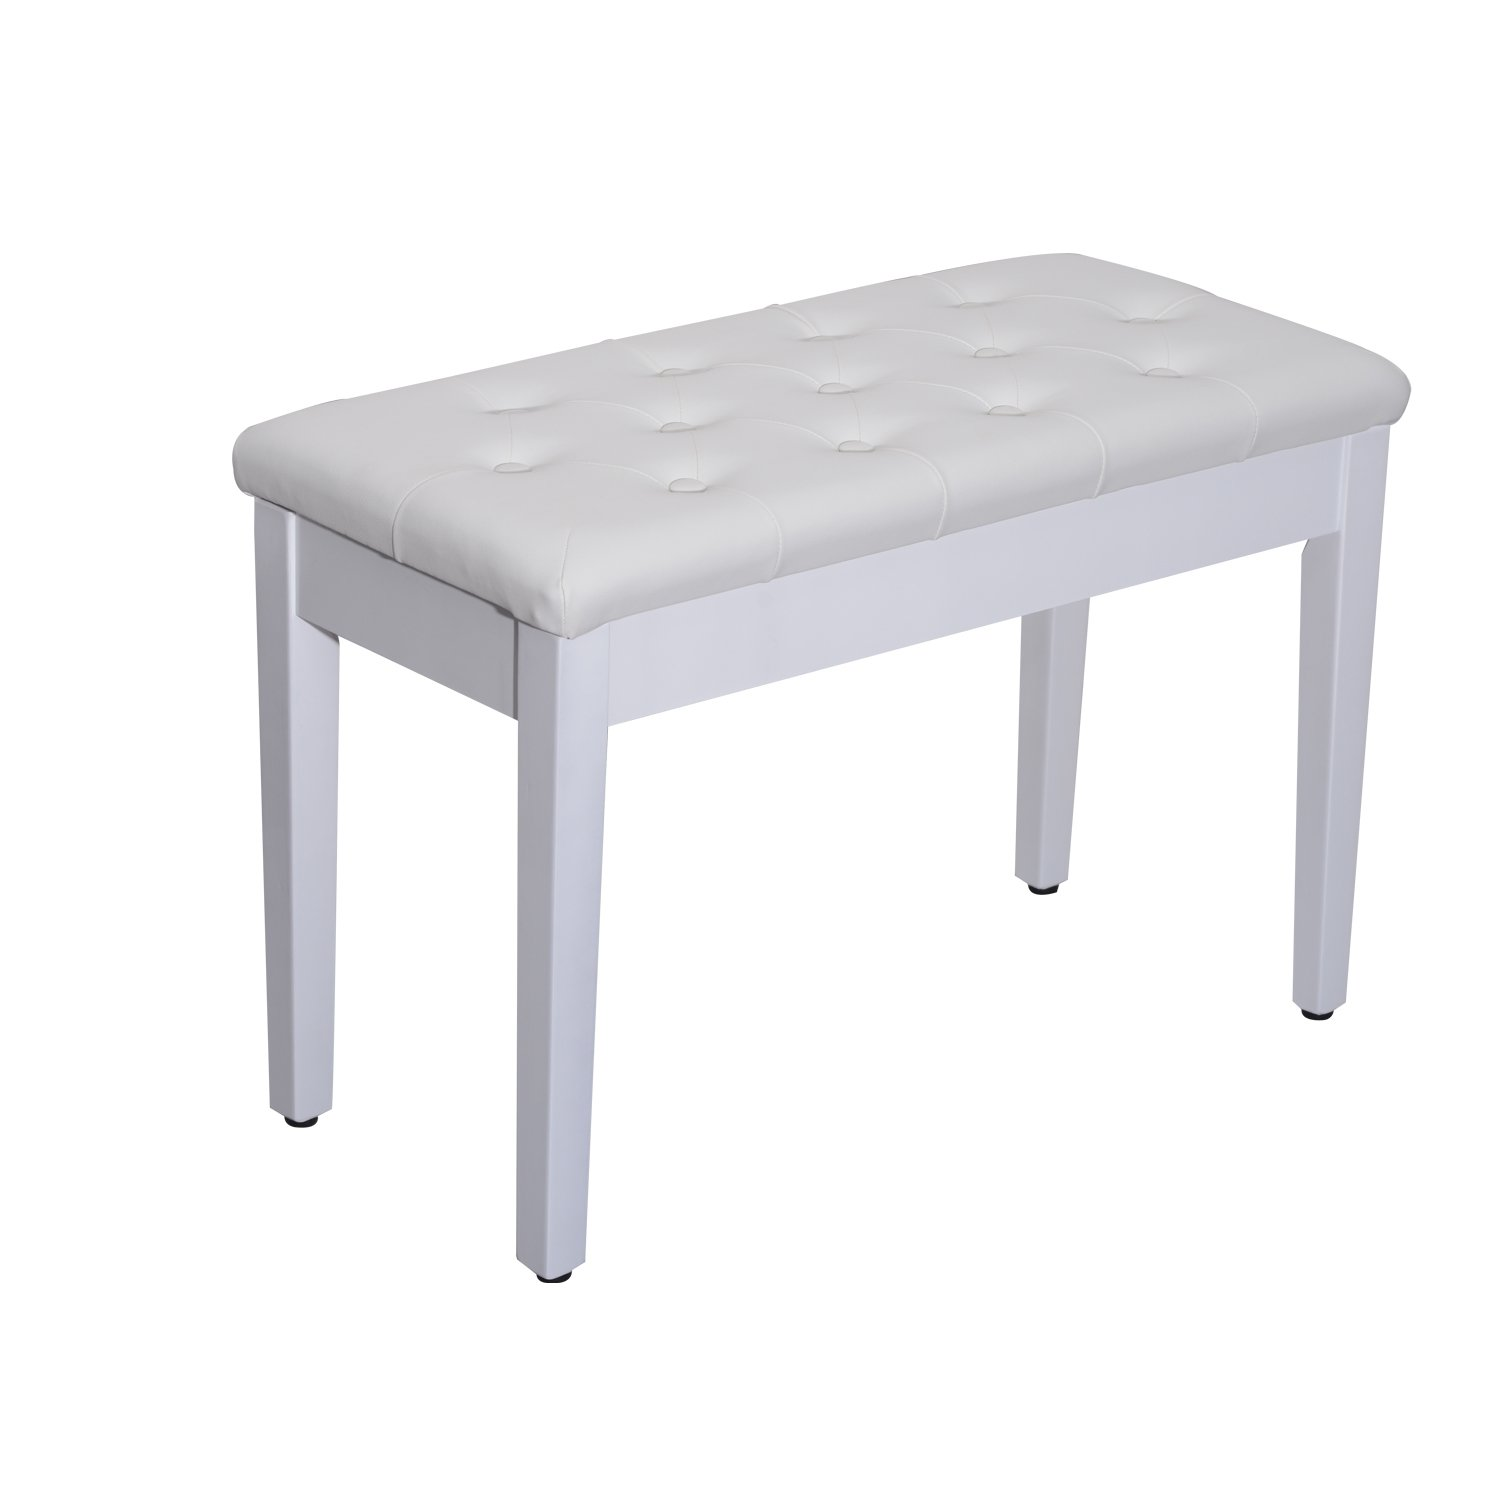 Homcom Faux Leather Piano Stool Keyboard Bench w/ Storage Compartment 76x36x50cm (White)  sc 1 st  Amazon UK : yamaha piano stool with storage - islam-shia.org